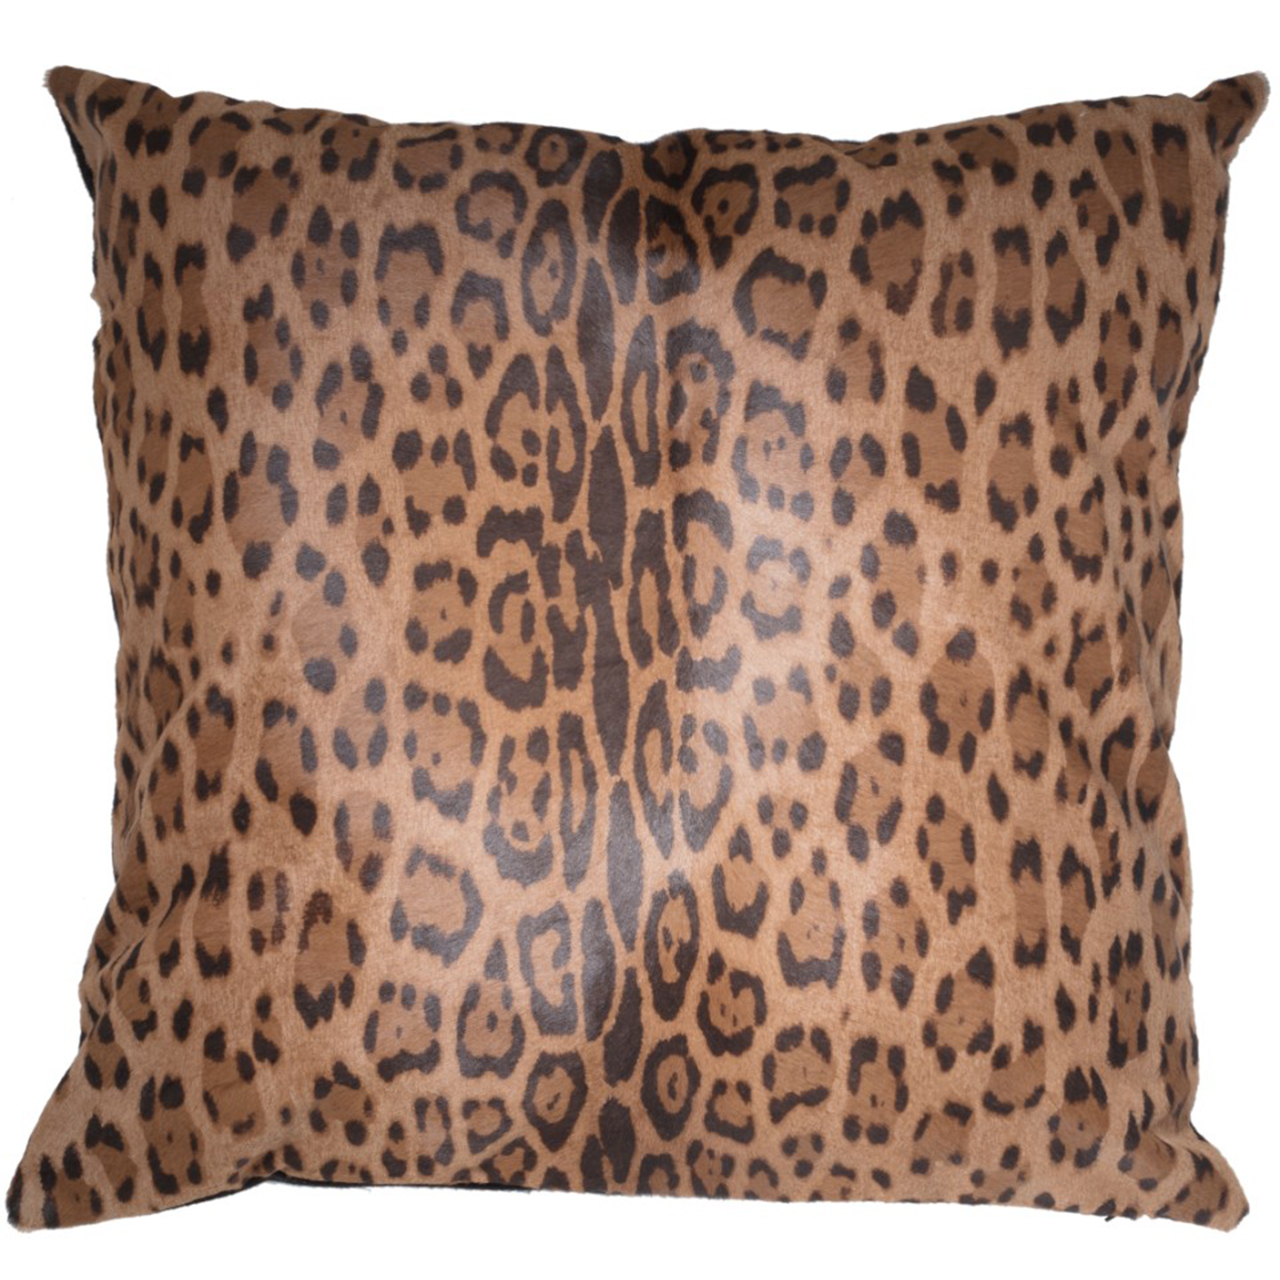 NEW-Cavallino Pillow- Leopard 1014-509(CPLEO1014509BL6060) - ANVOGG FEEL SHEARLING | ANVOGG